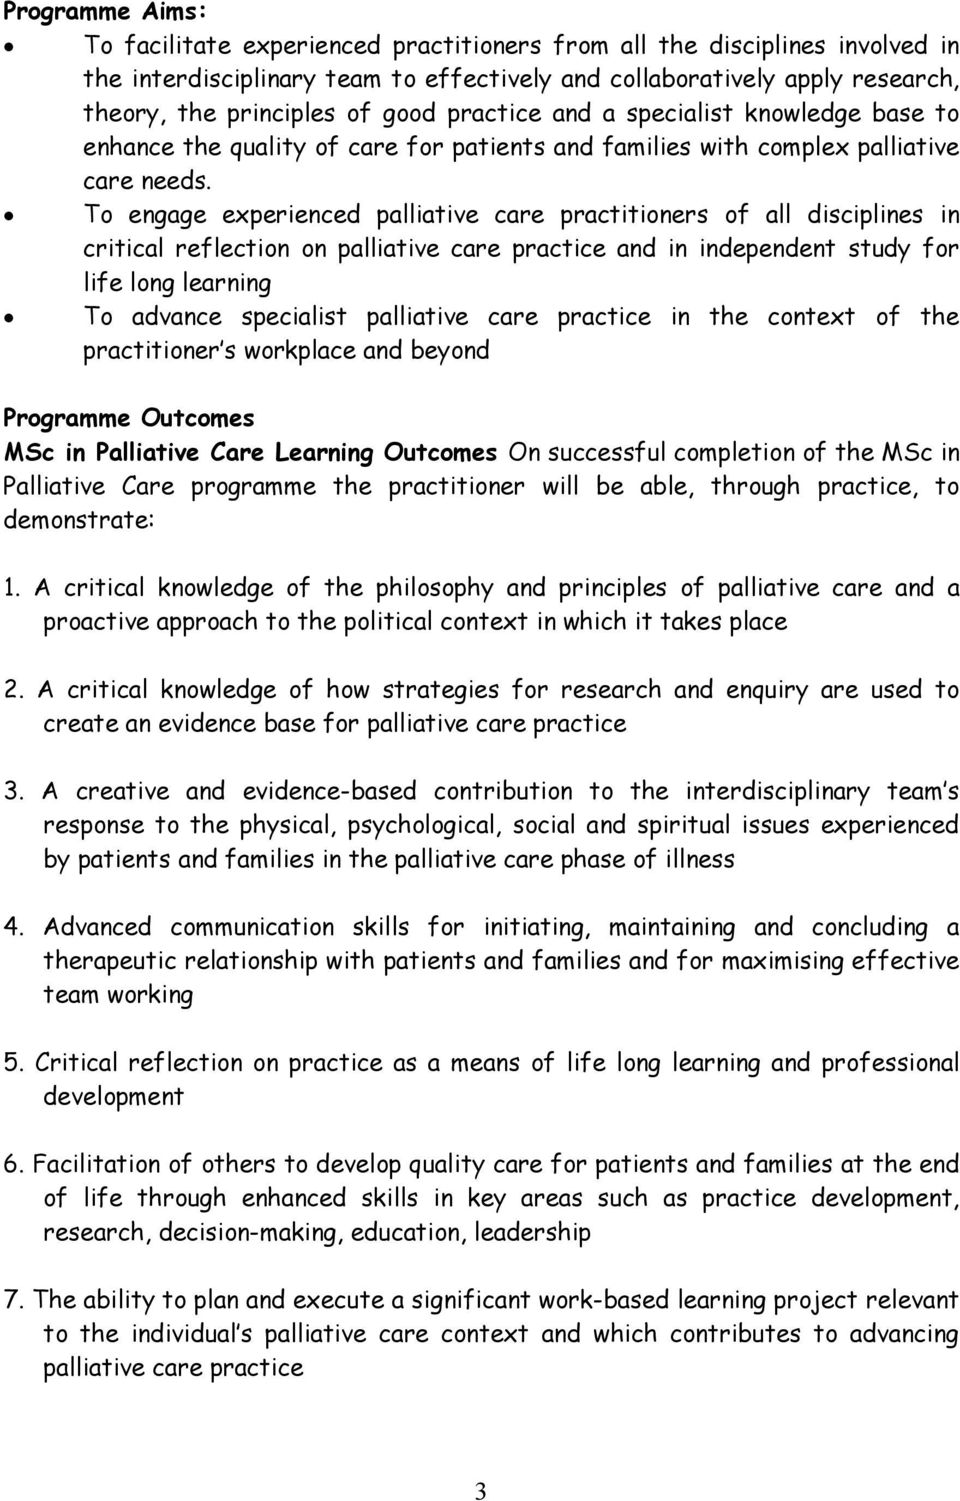 To engage experienced palliative care practitioners of all disciplines in critical reflection on palliative care practice and in independent study for life long learning To advance specialist